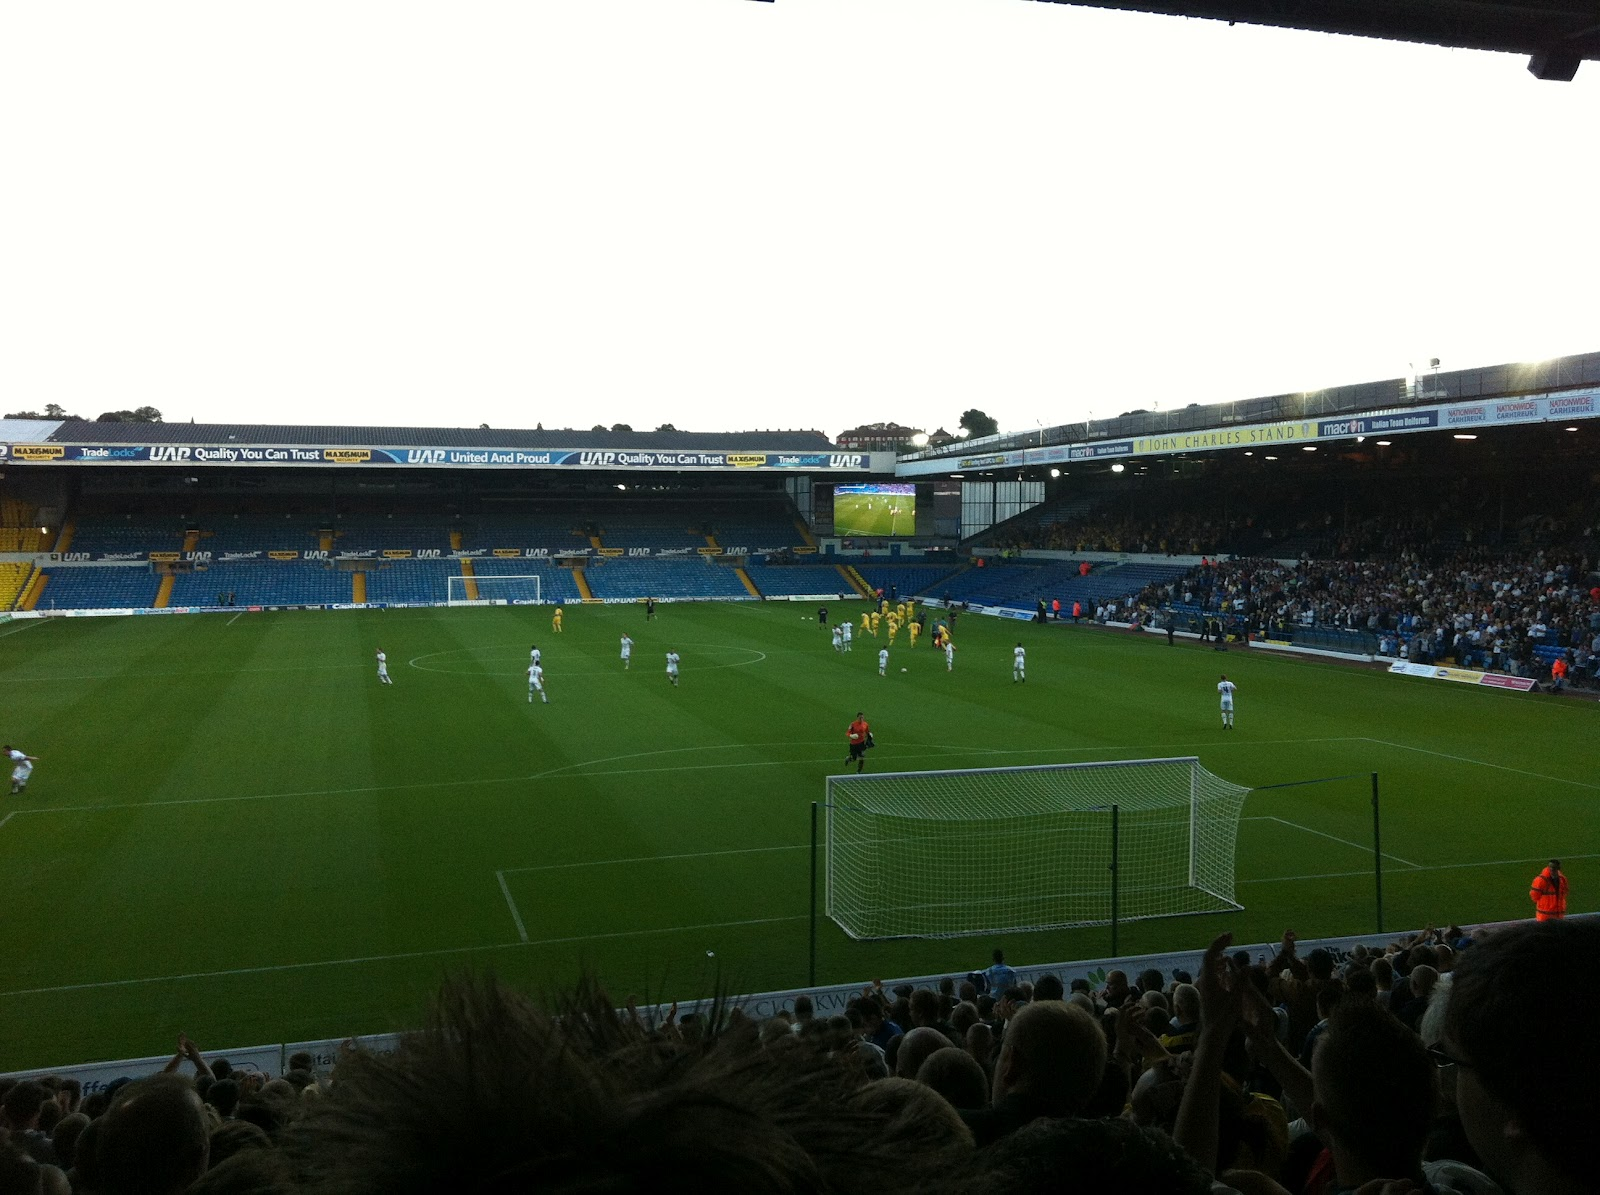 Elland road intimidating atmosphere lyrics